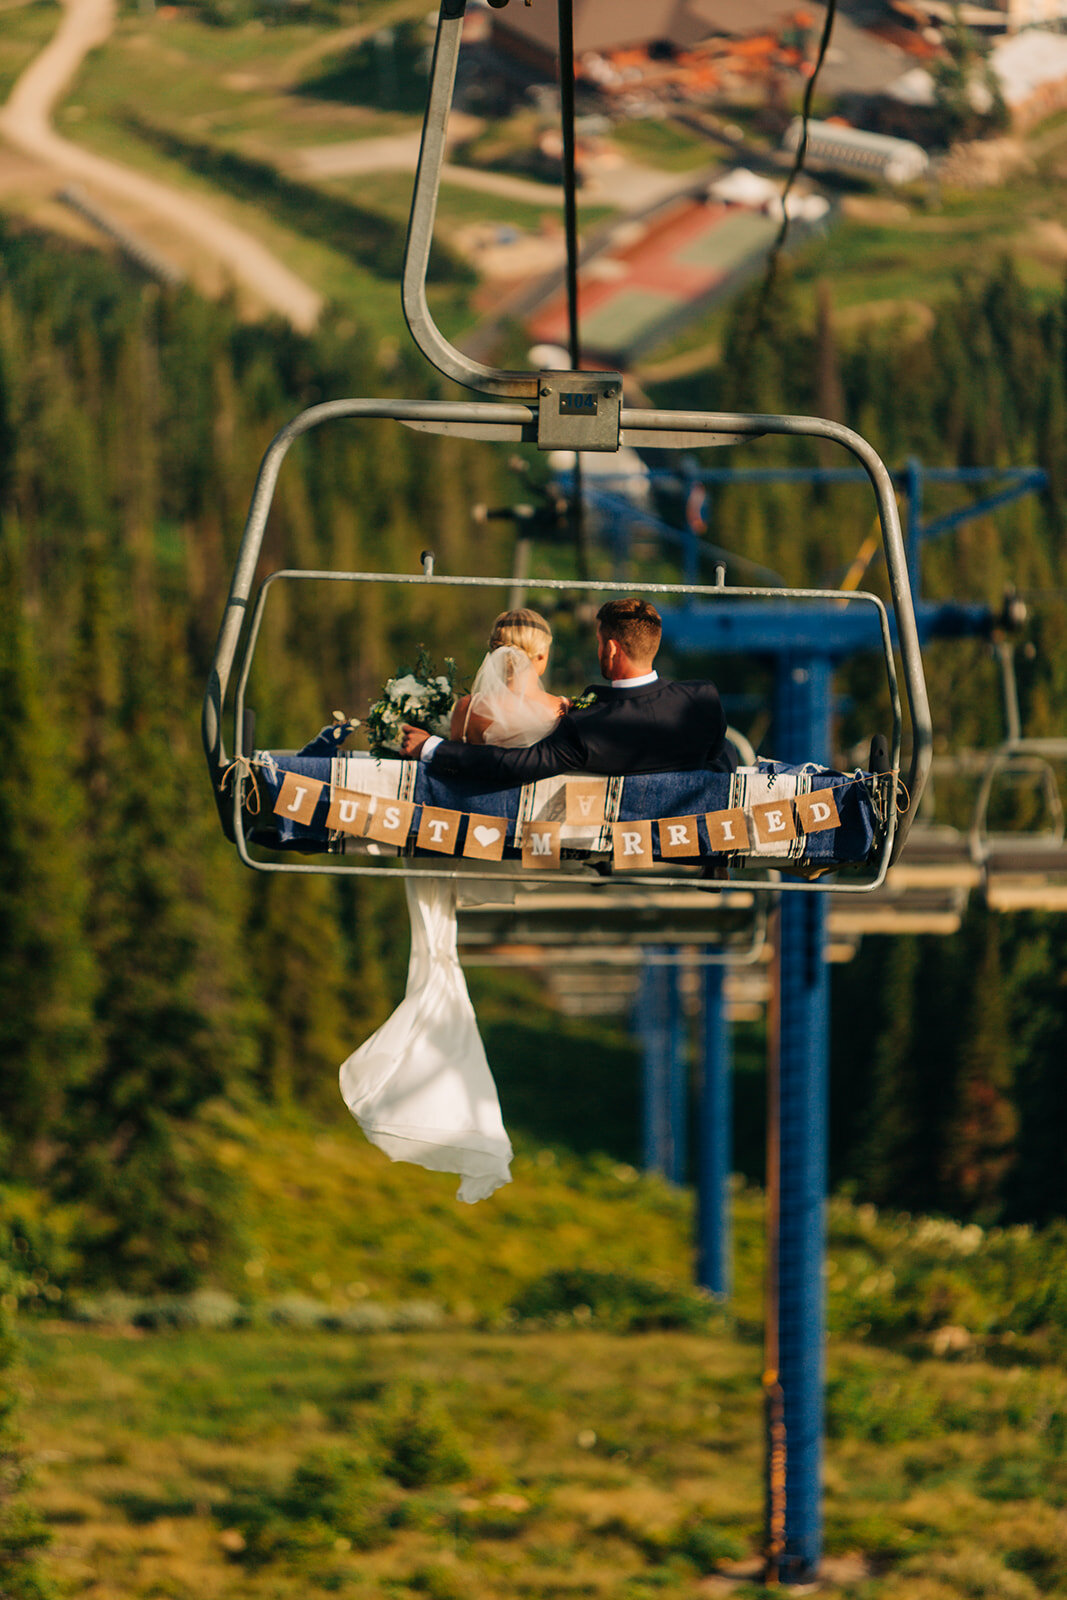 bride and groom chairlift down from wedding ceremony spokane